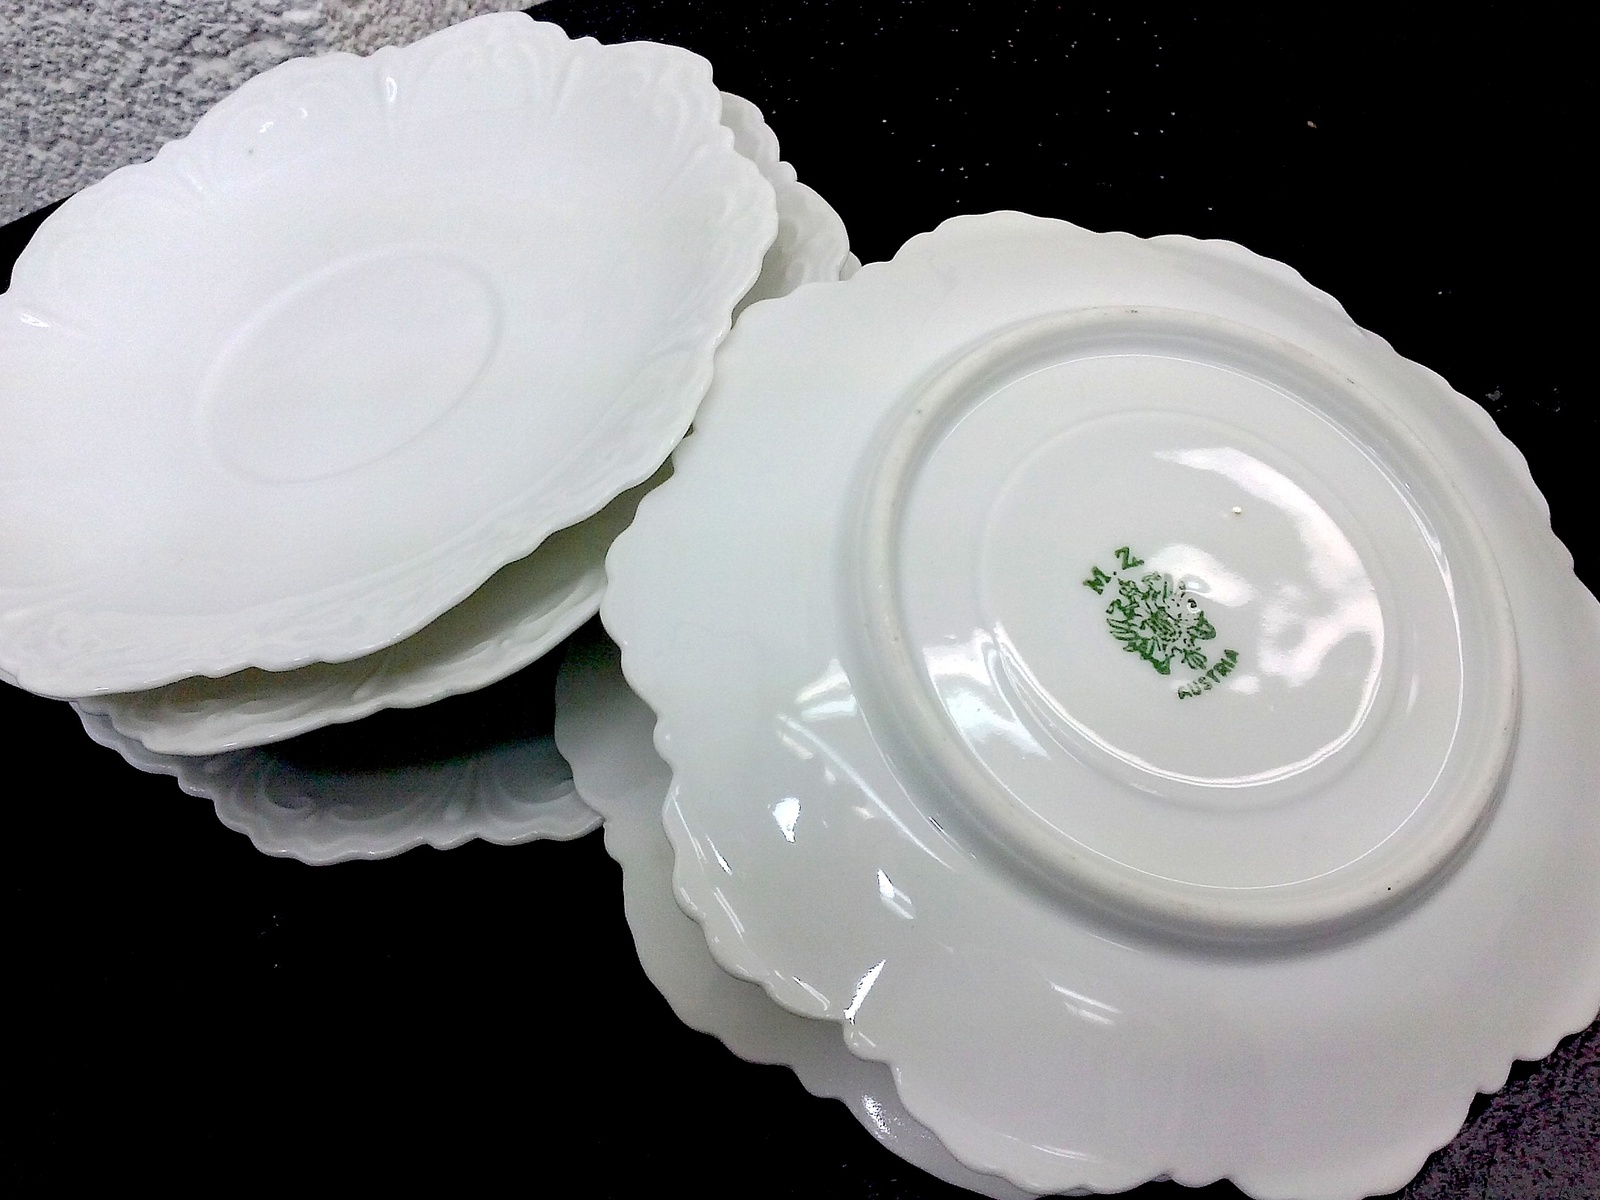 Used Fine China Dinnerware Set For Sale 163 Ads In US